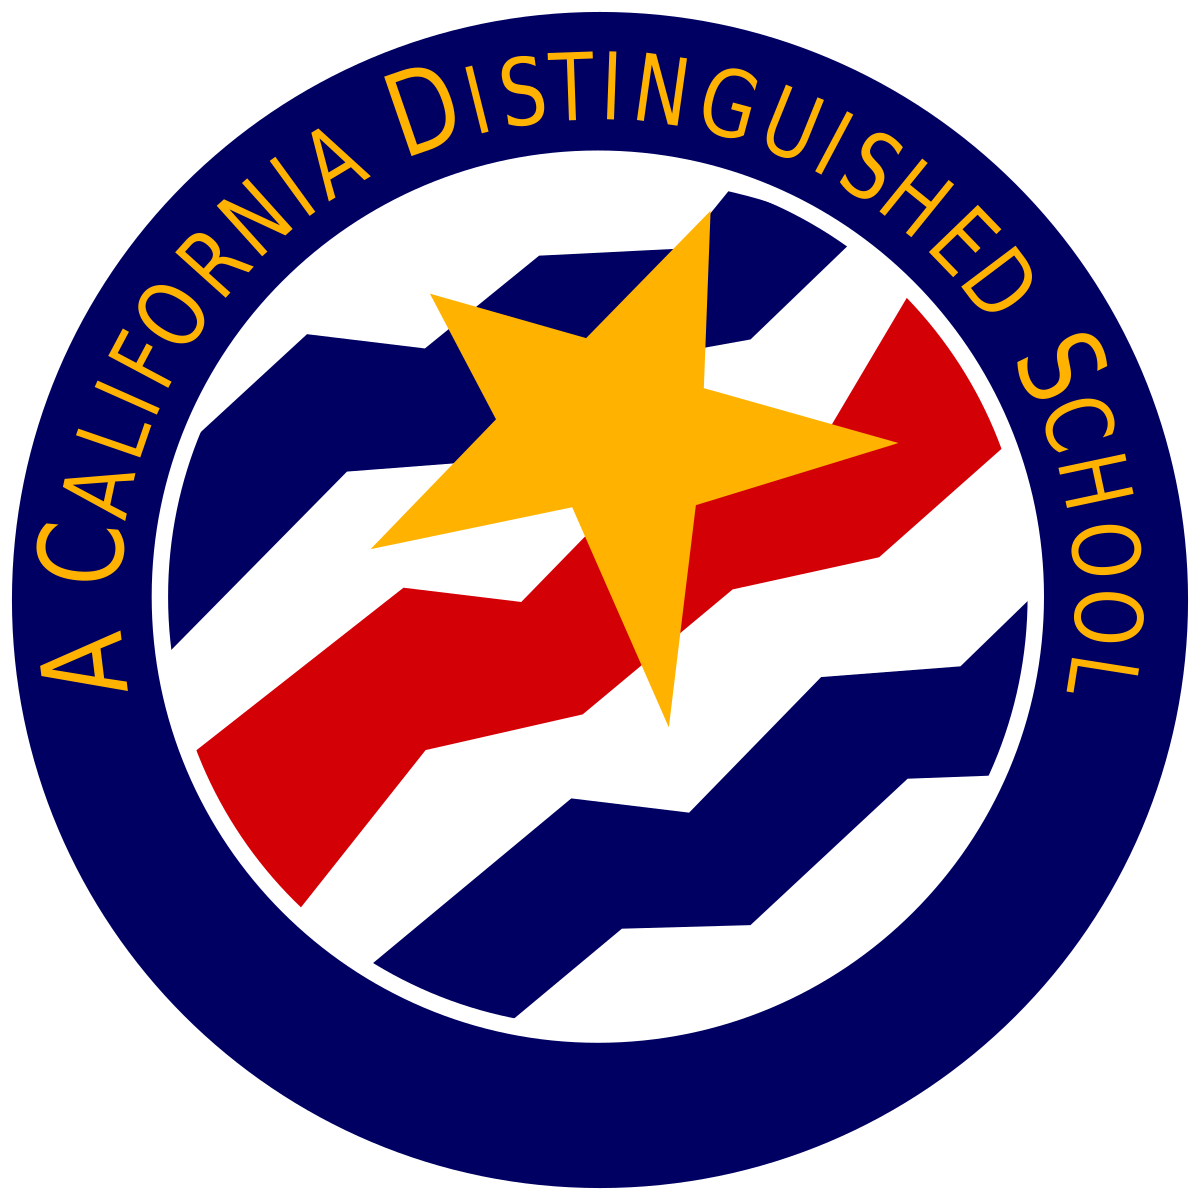 ca distinguished